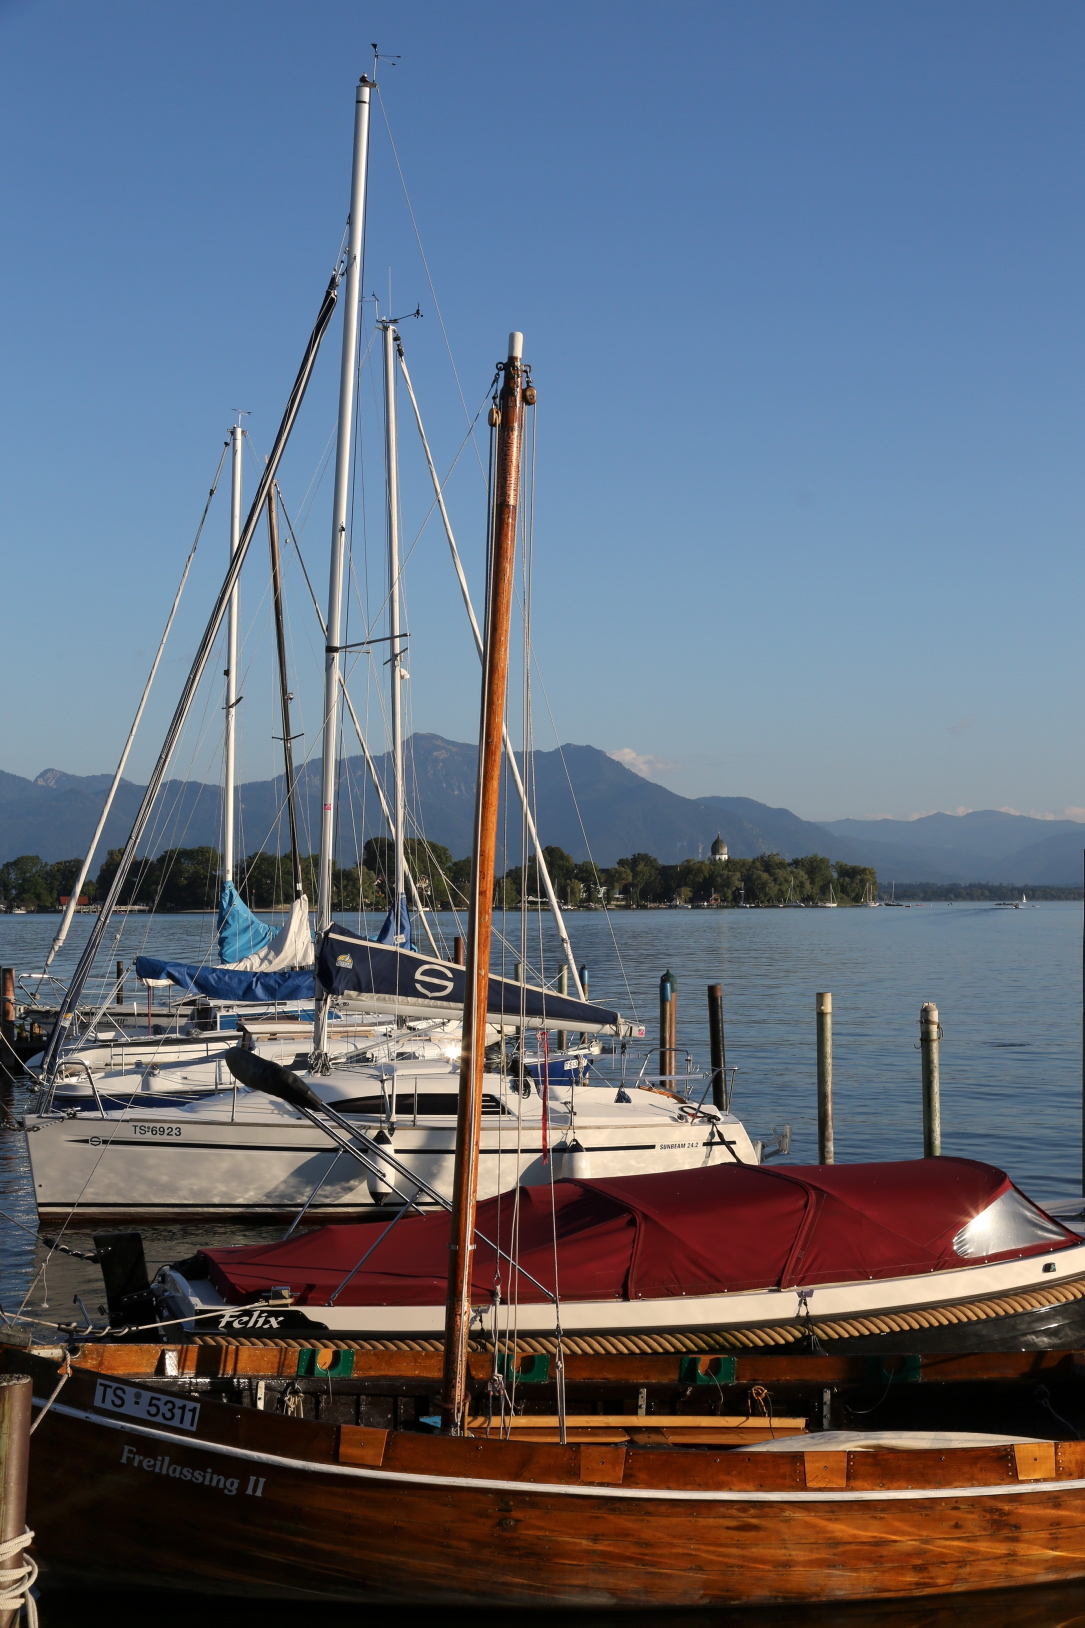 Gstad am Chiemsee